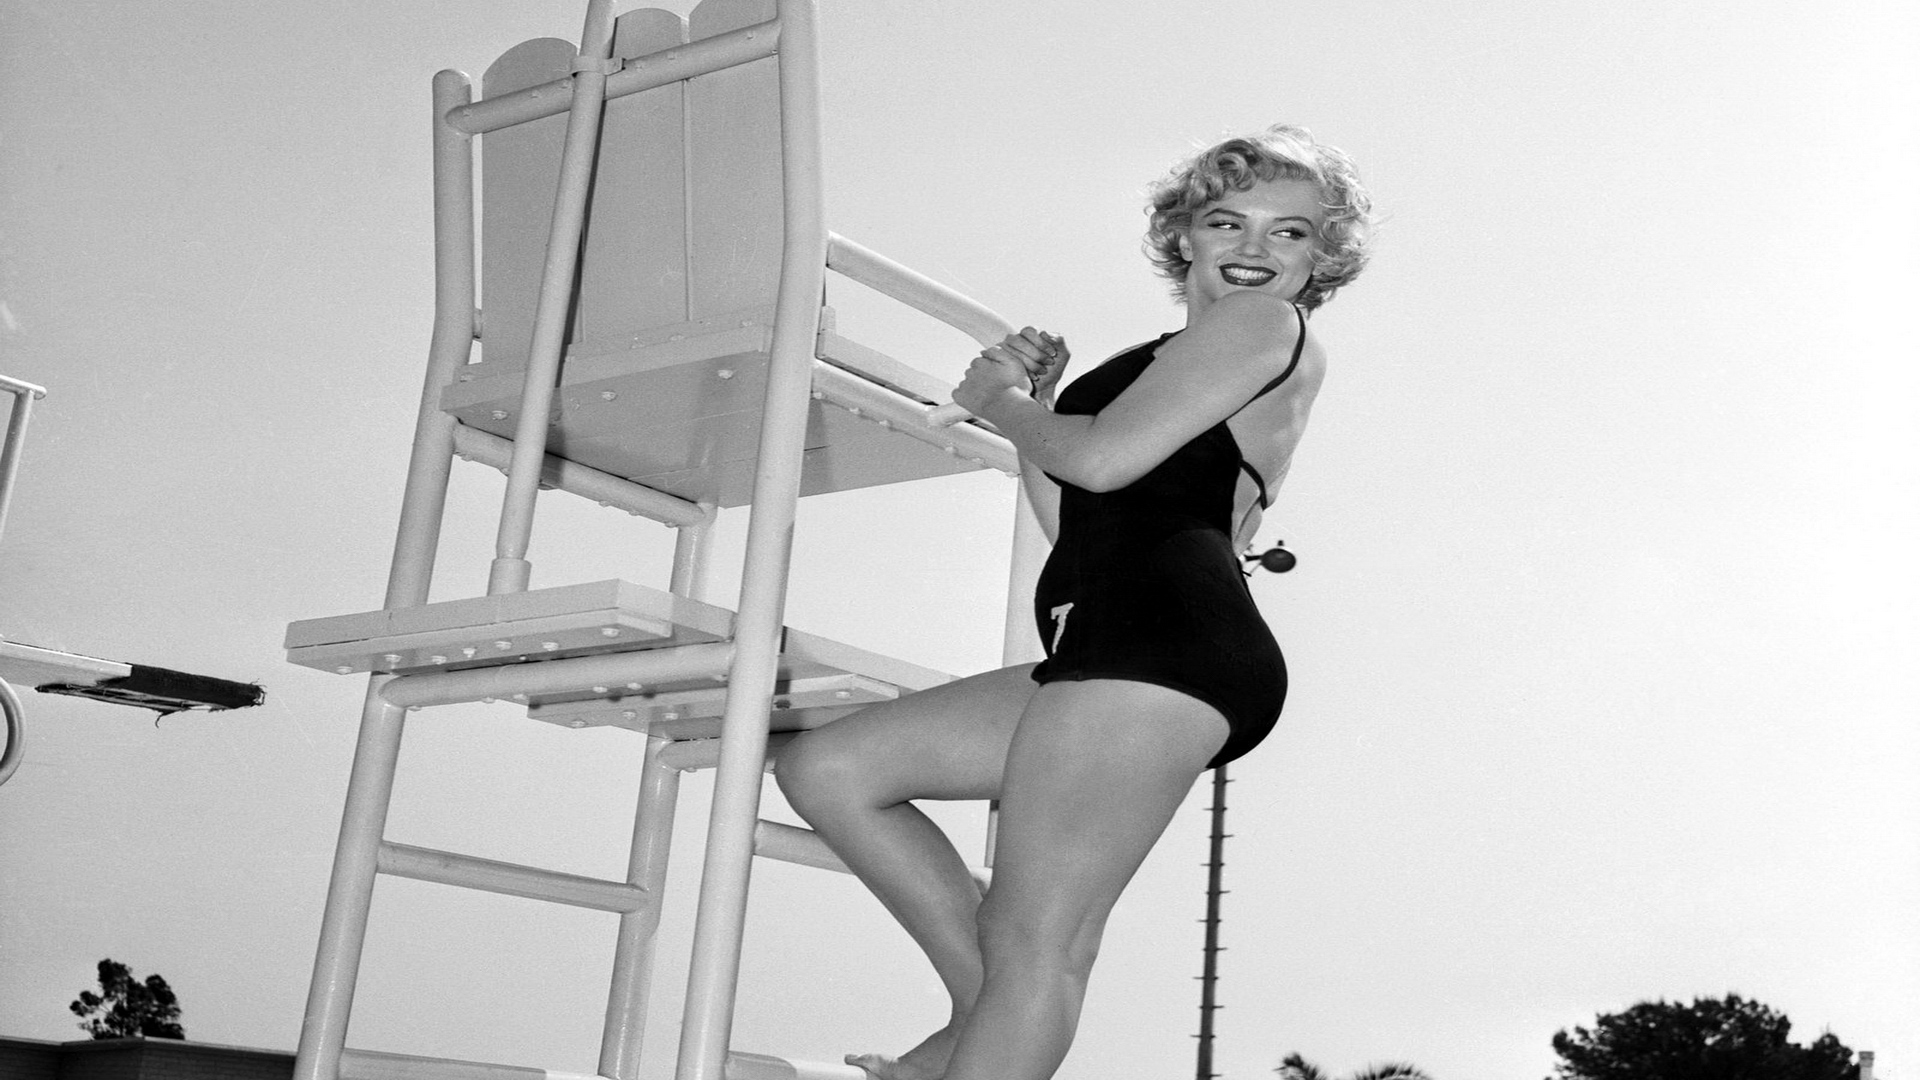 Marilyn-Monroe-new-2012-black-and-white-wallpapers-4